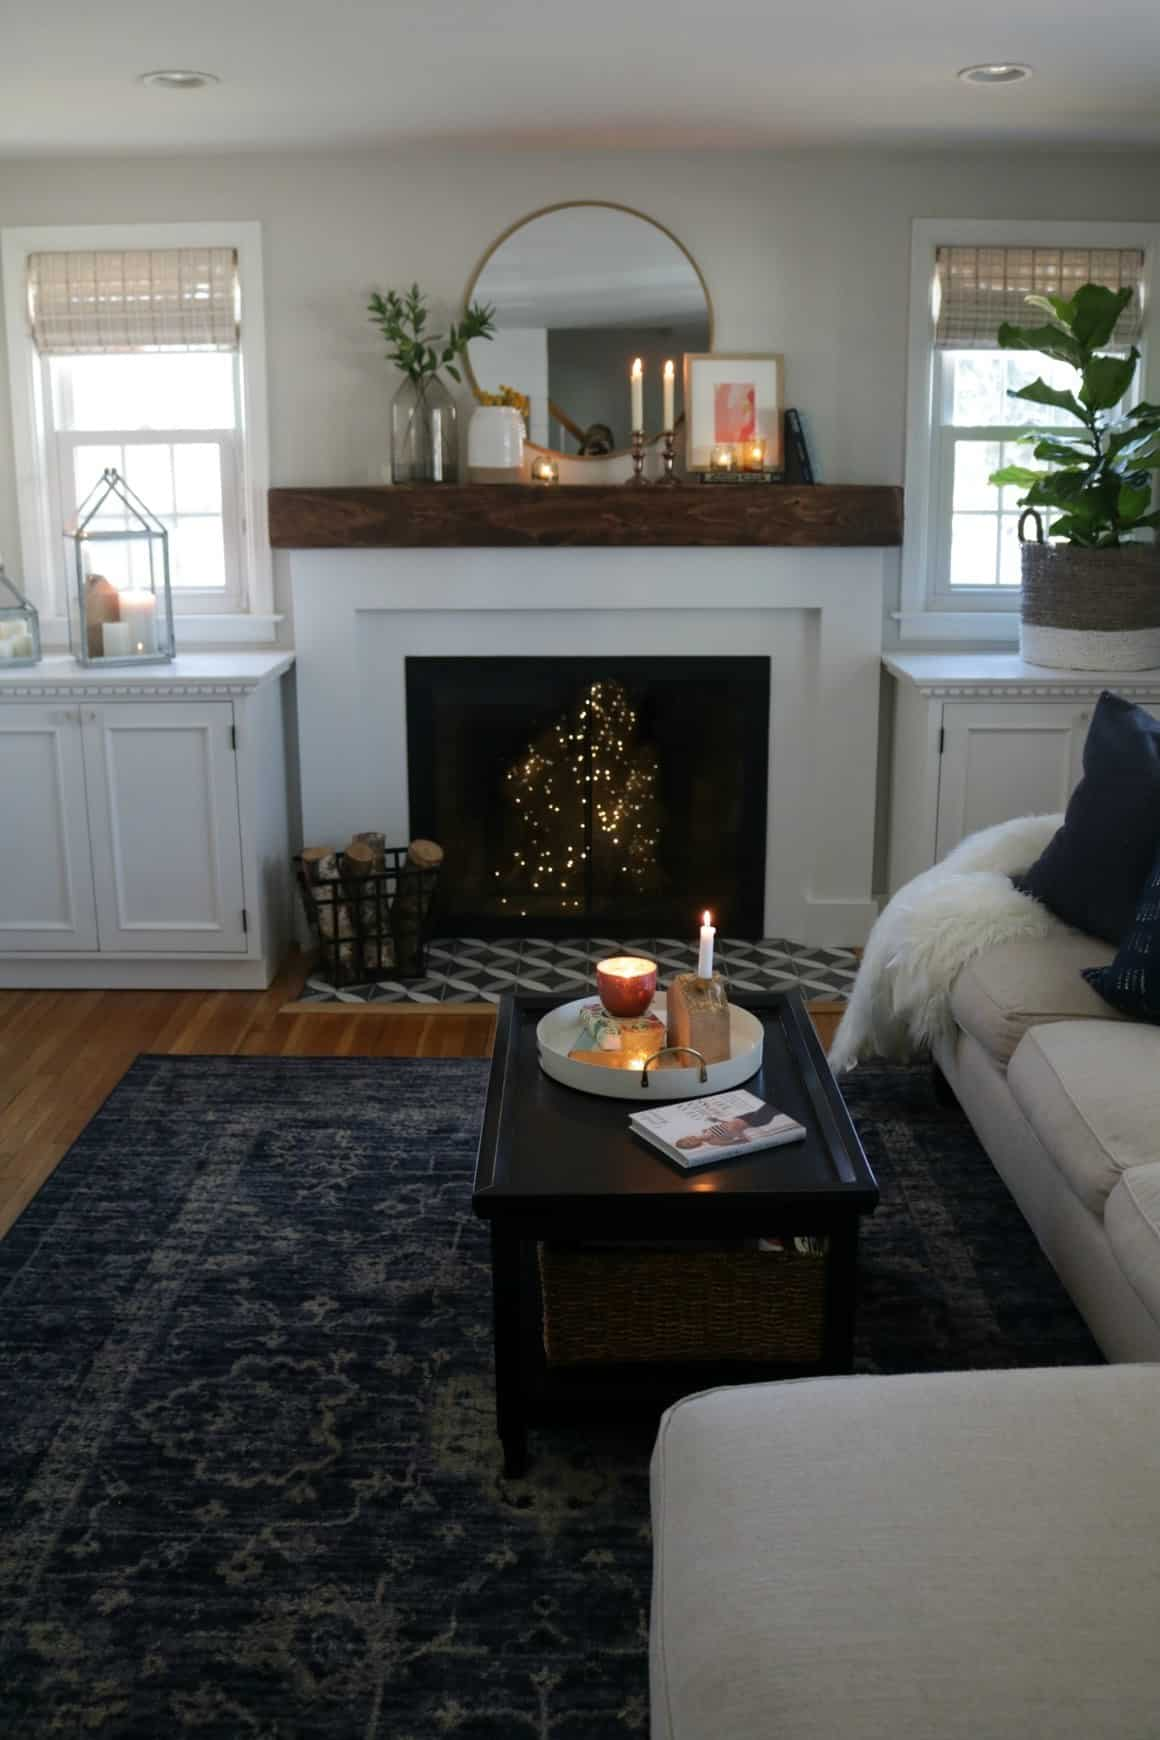 Add a Thick Antique Wood Mantel